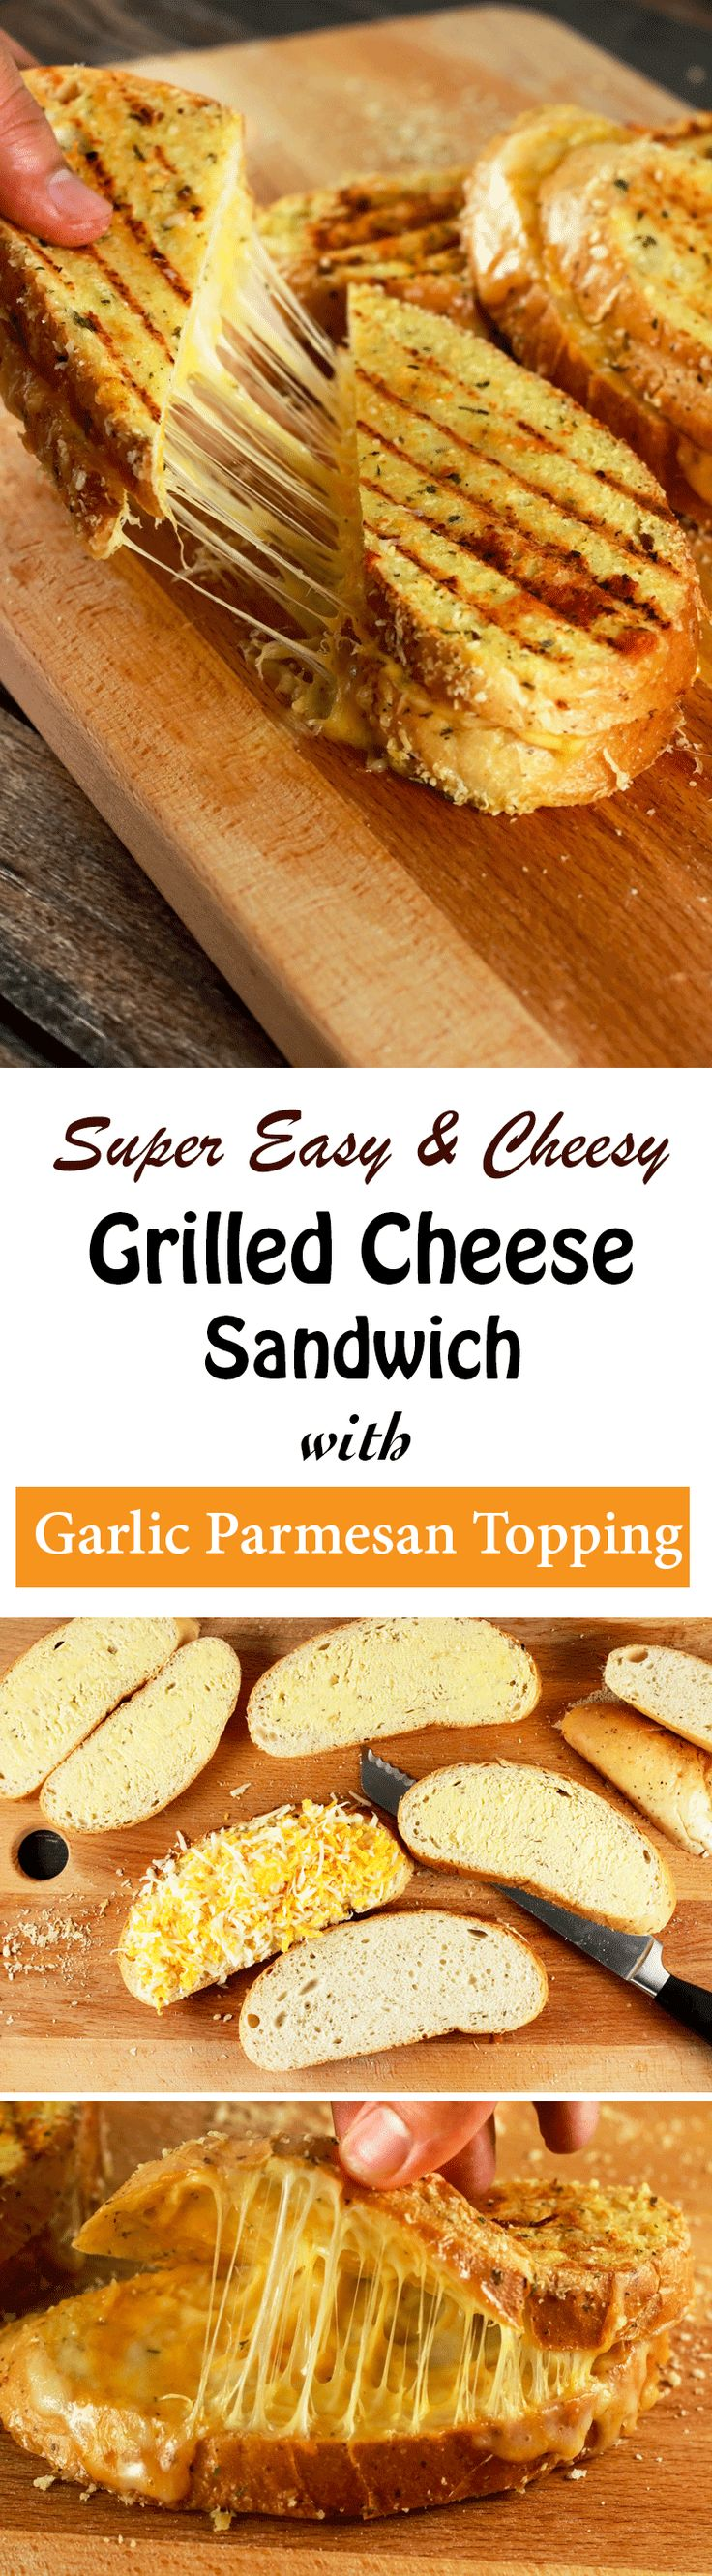 This grilled cheese sandwich is going to quickly become your absolute favorite! It's SUPER easy to make and the kids are going to love this!